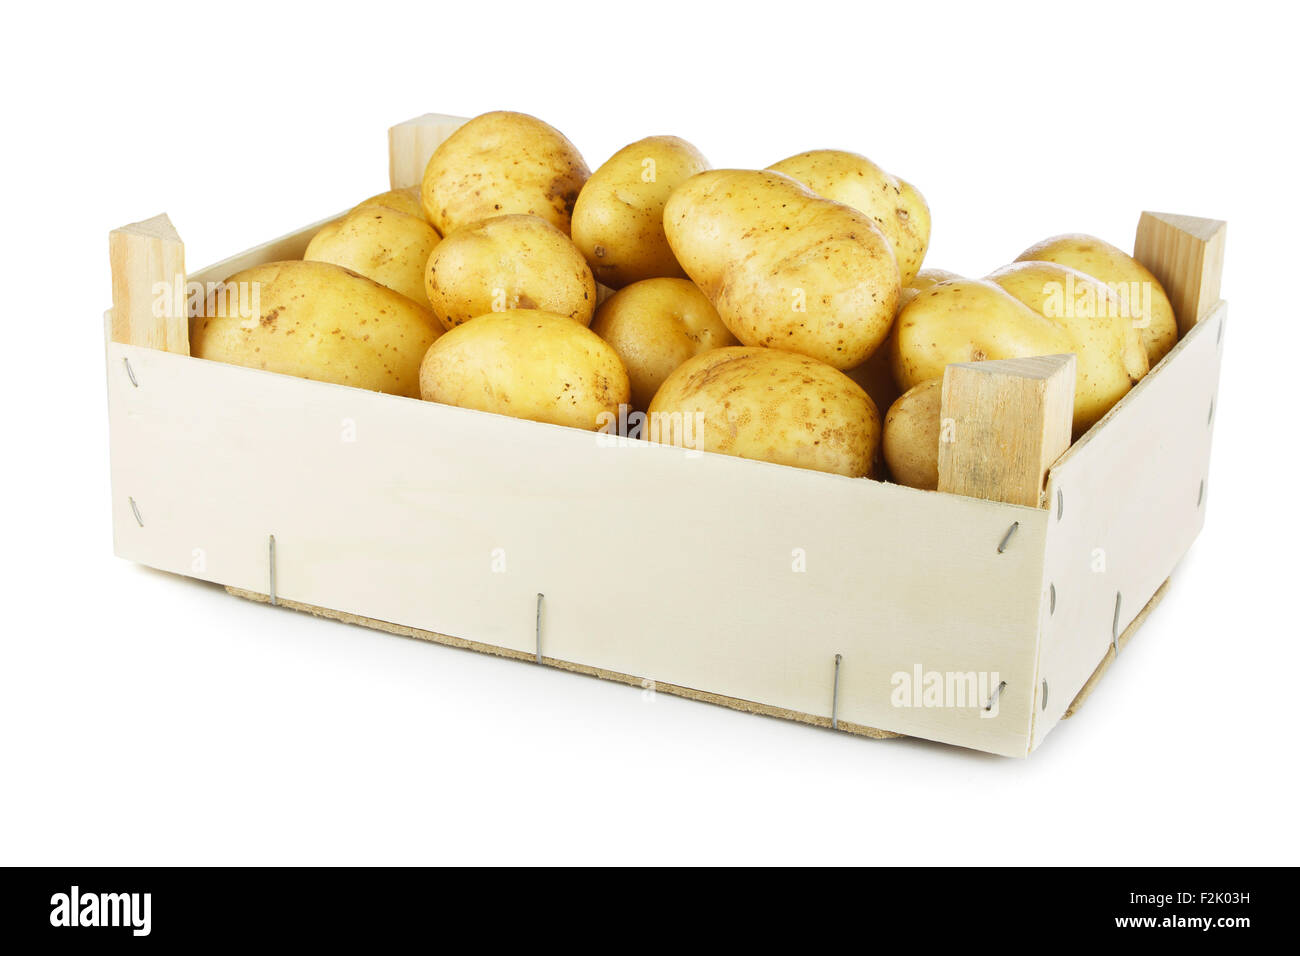 Potatoes in wooden box isolated on white background - Stock Image